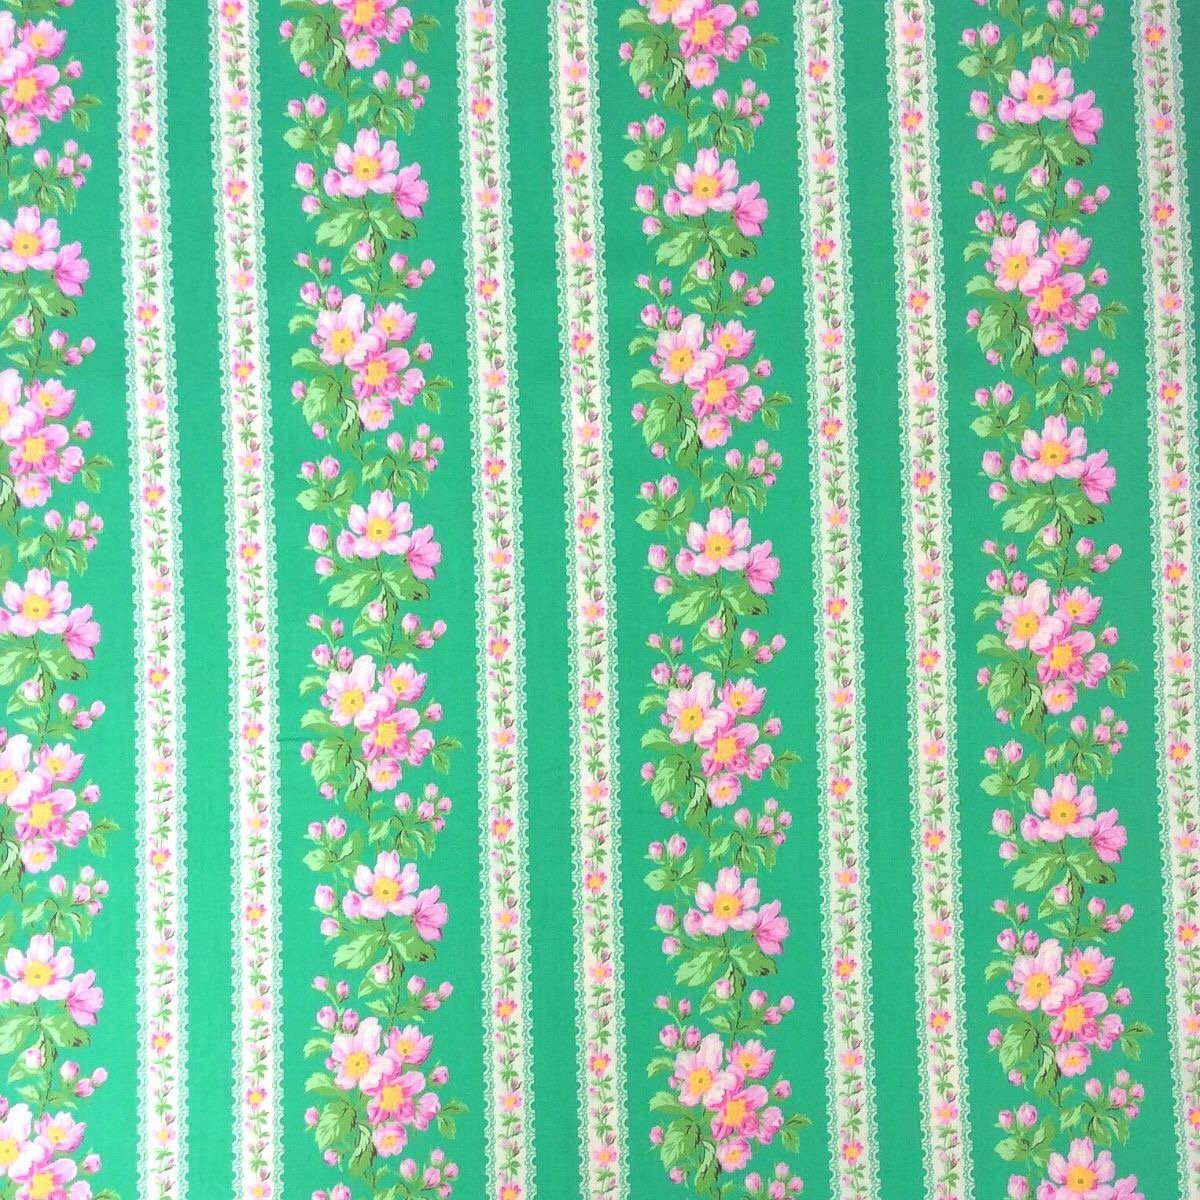 English Garden Cabbage Rose Floral French Country Cotton Quilt Fabric WE141